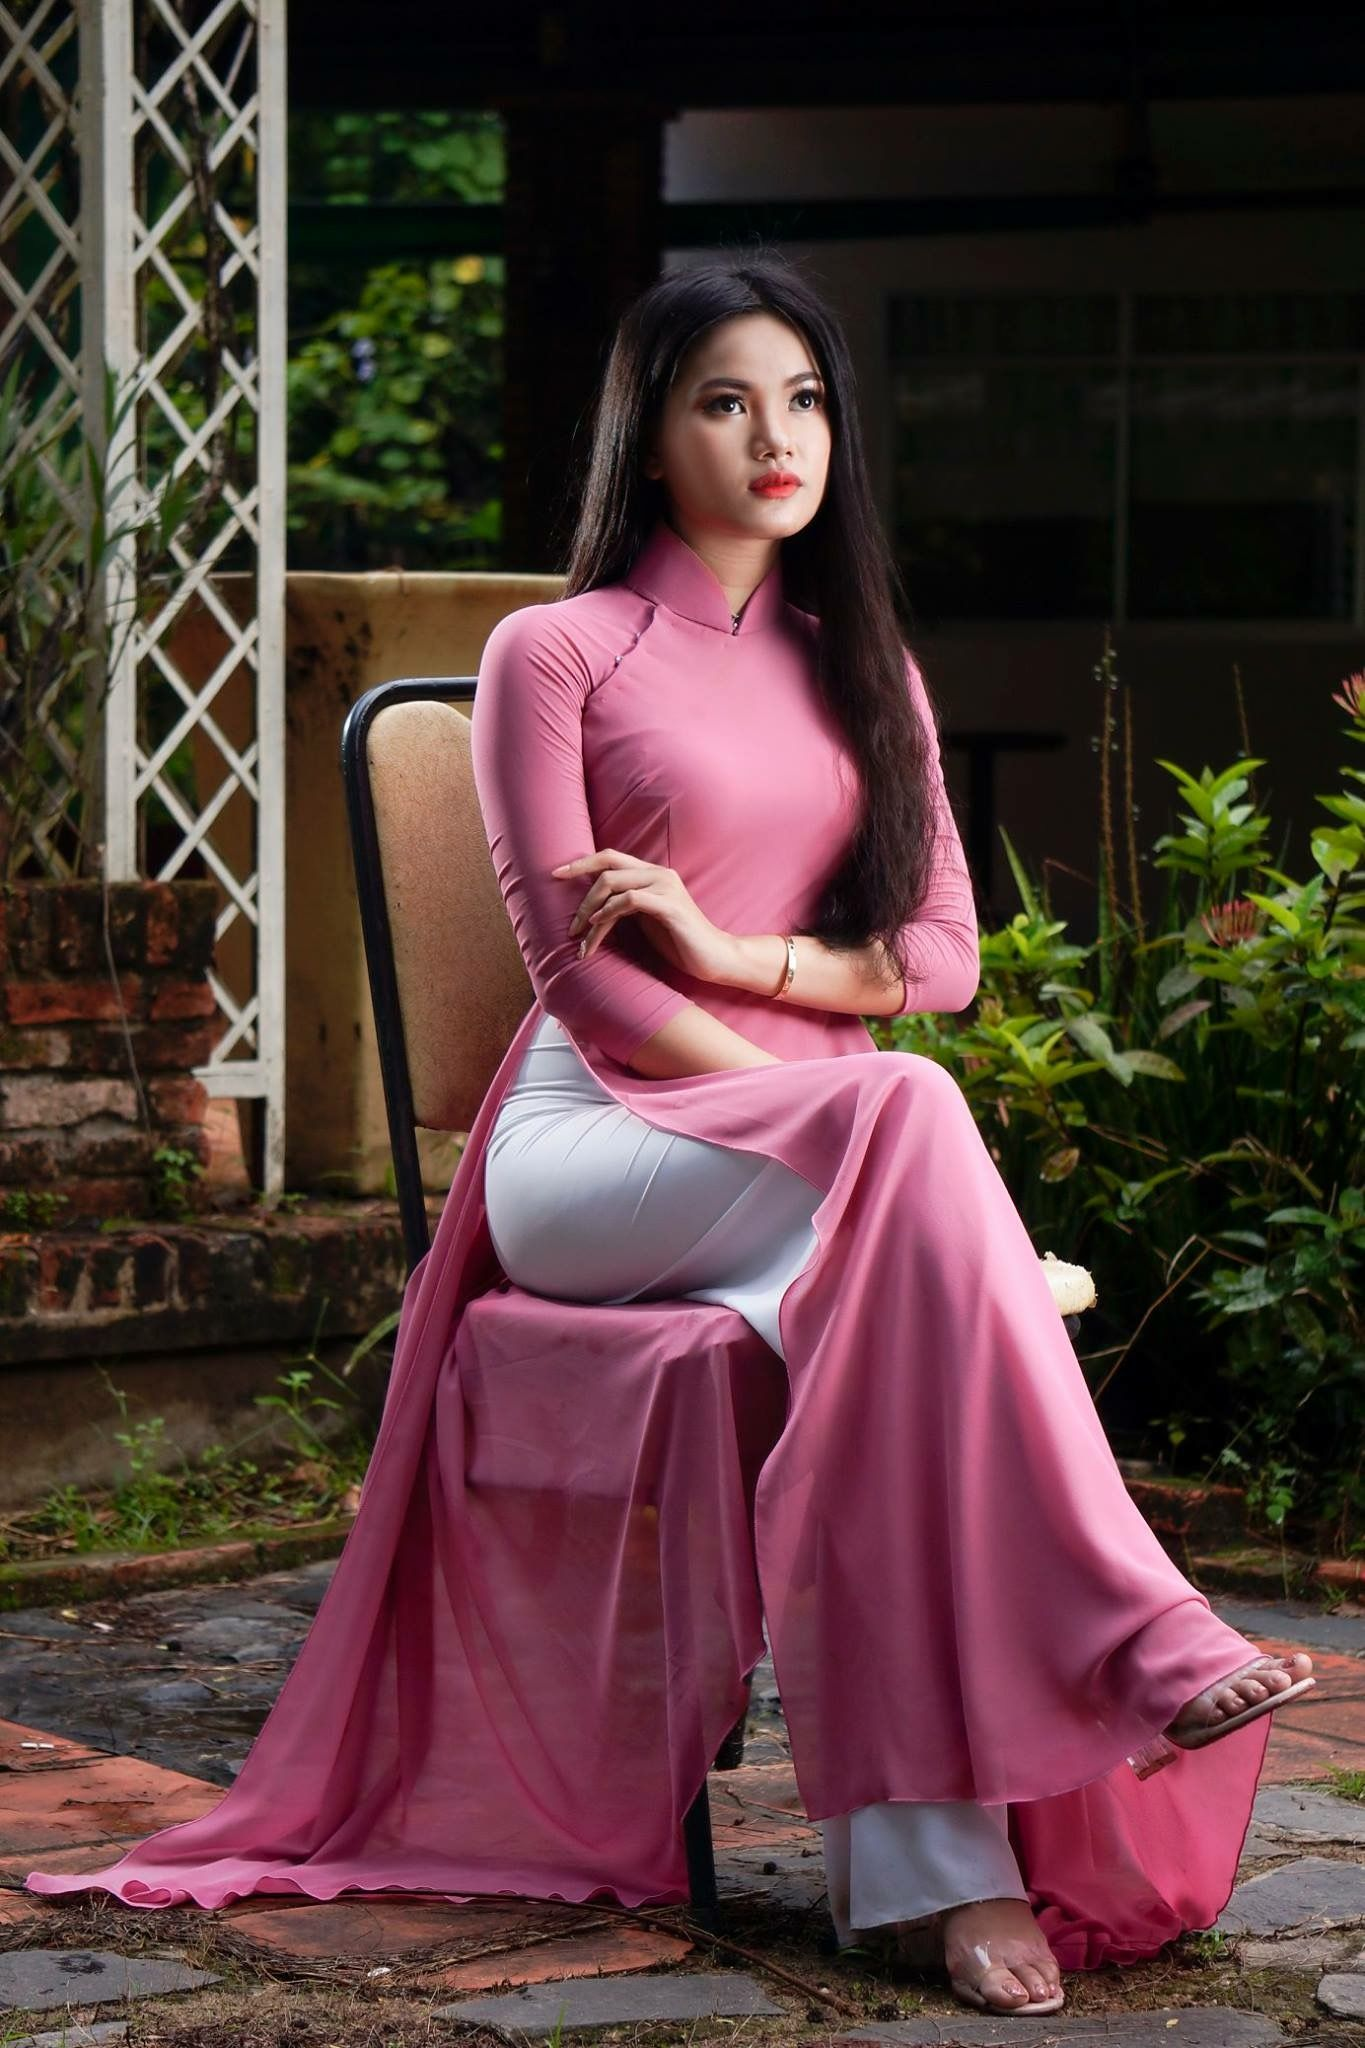 Discover these costumes of Vietnamese women in the past #